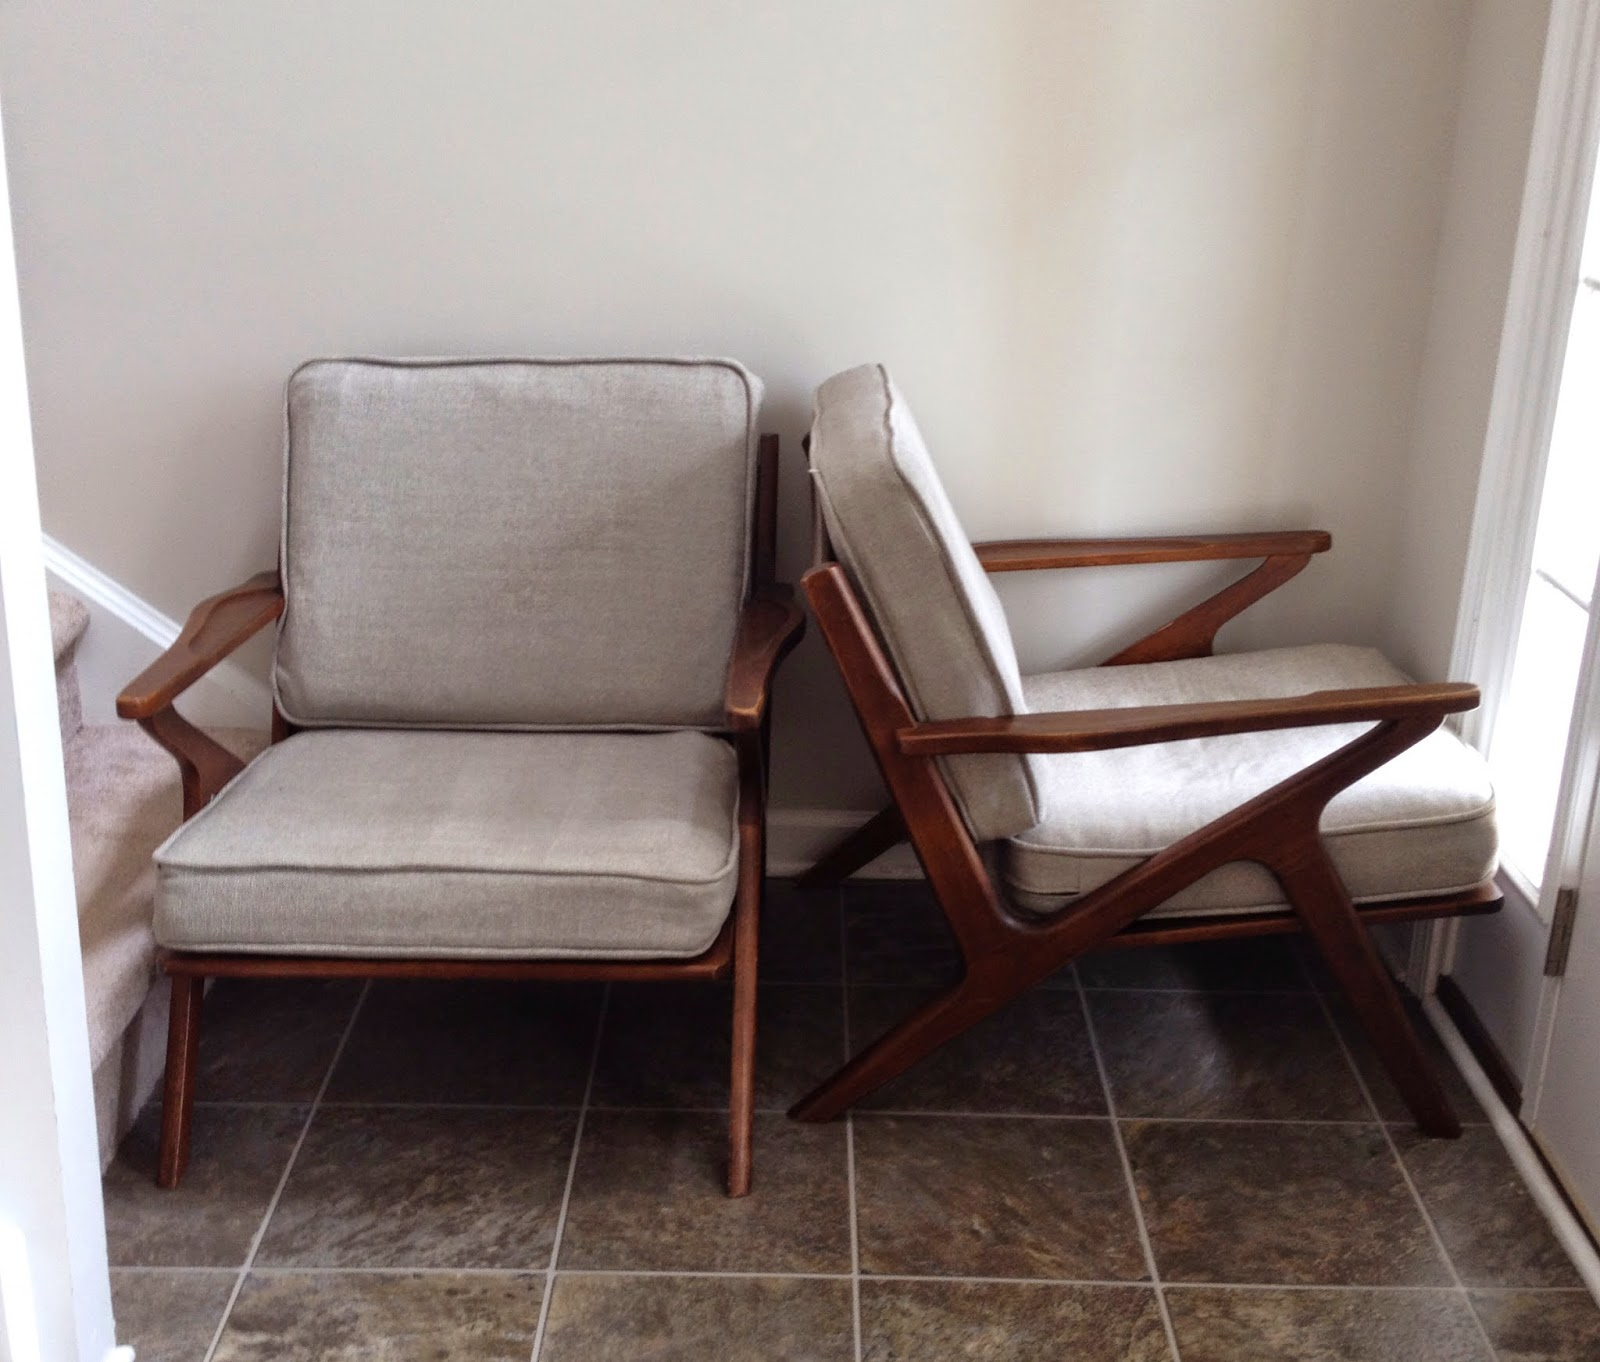 Places To Borrow Tables And Chairs Stand For Swing Chair Restlessoasis A Tale Of Two I 39m Still Here